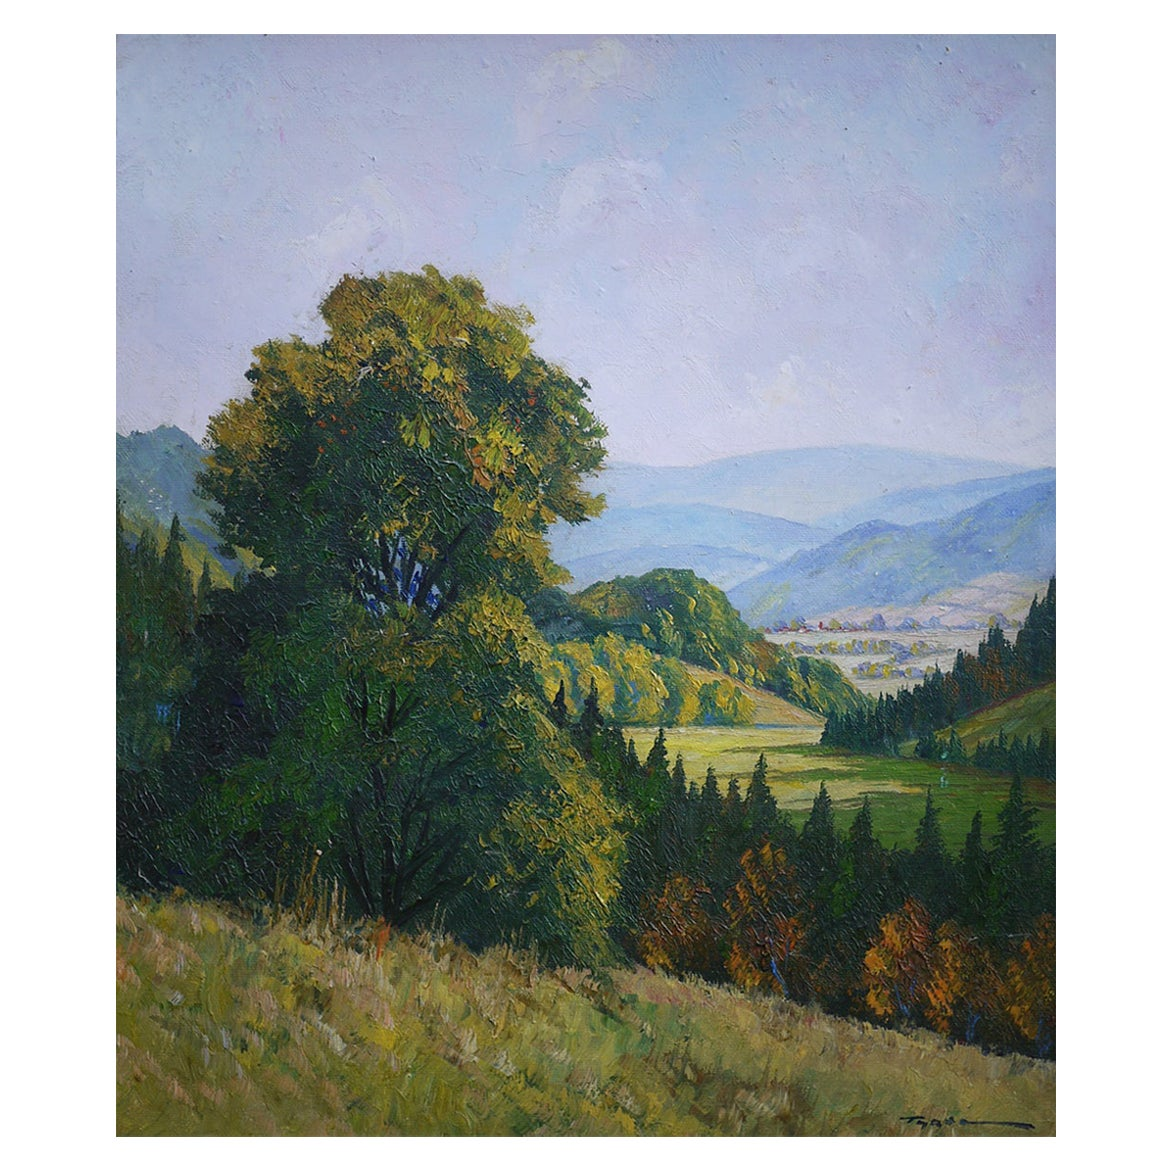 Hilly Landscape Nature Painting Italian Oil on Canvas 1930